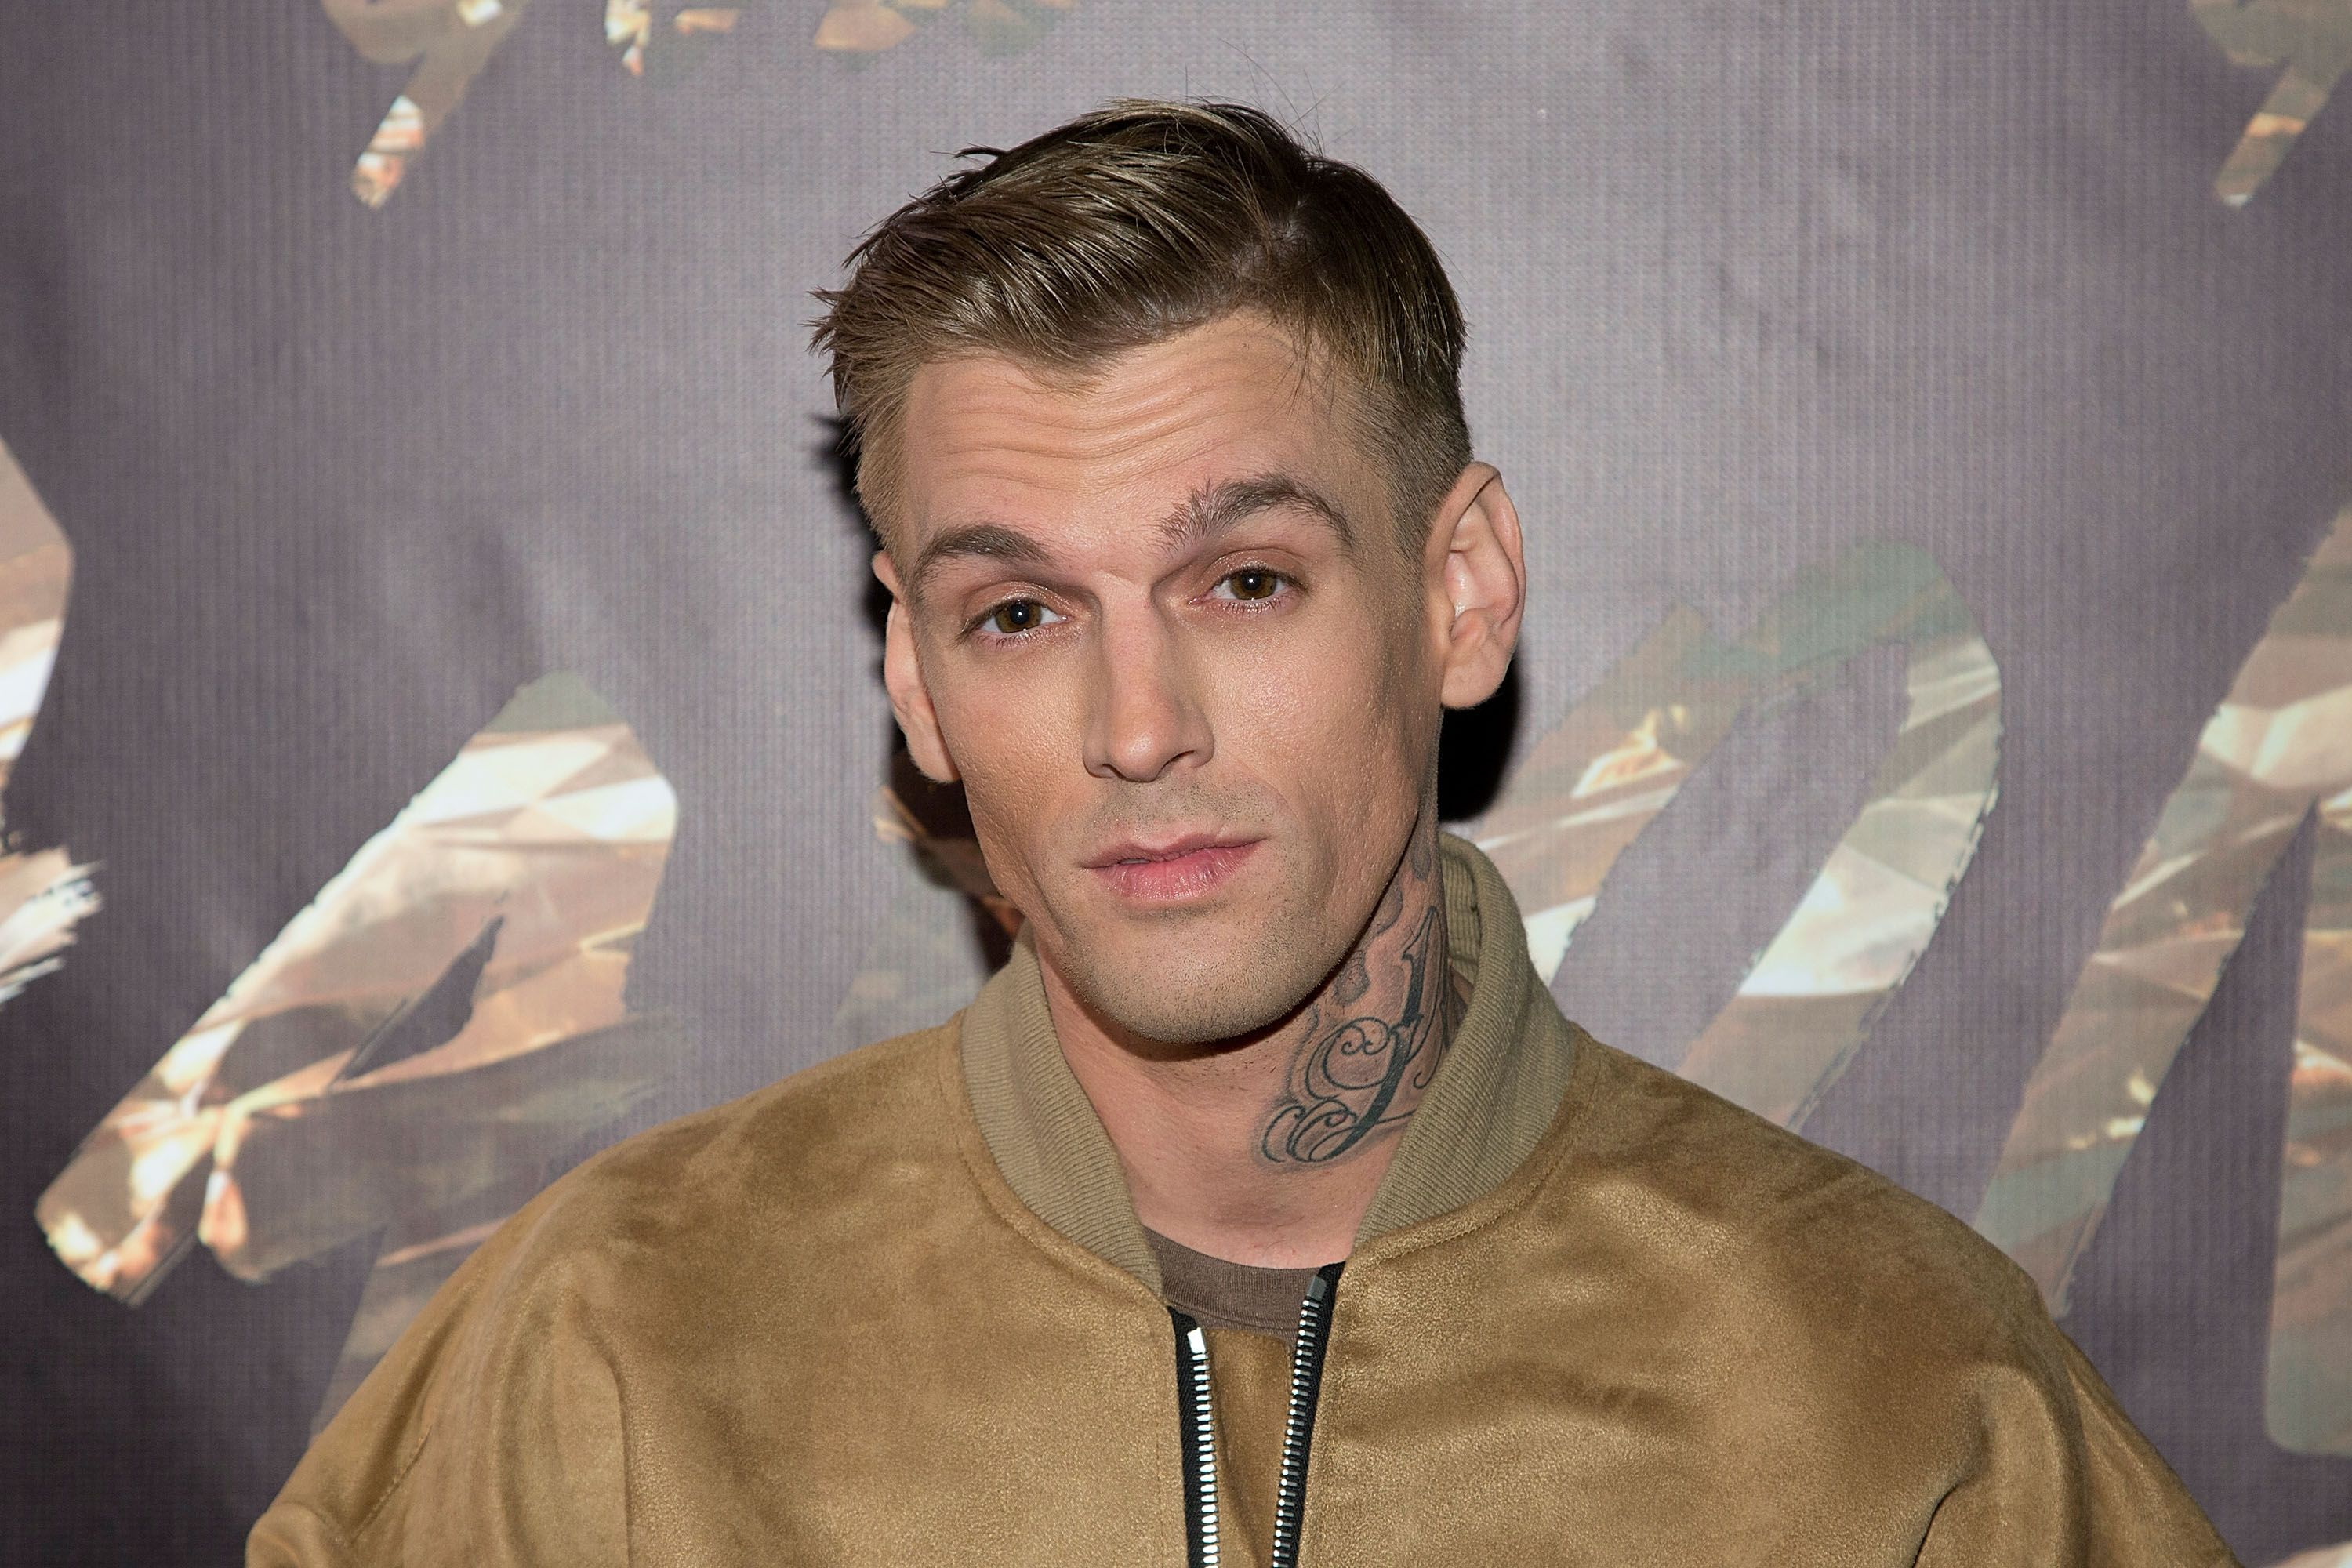 R.I.P. Brotherly Love: Aaron Carter Claims There's Too Much Animosity With Nick